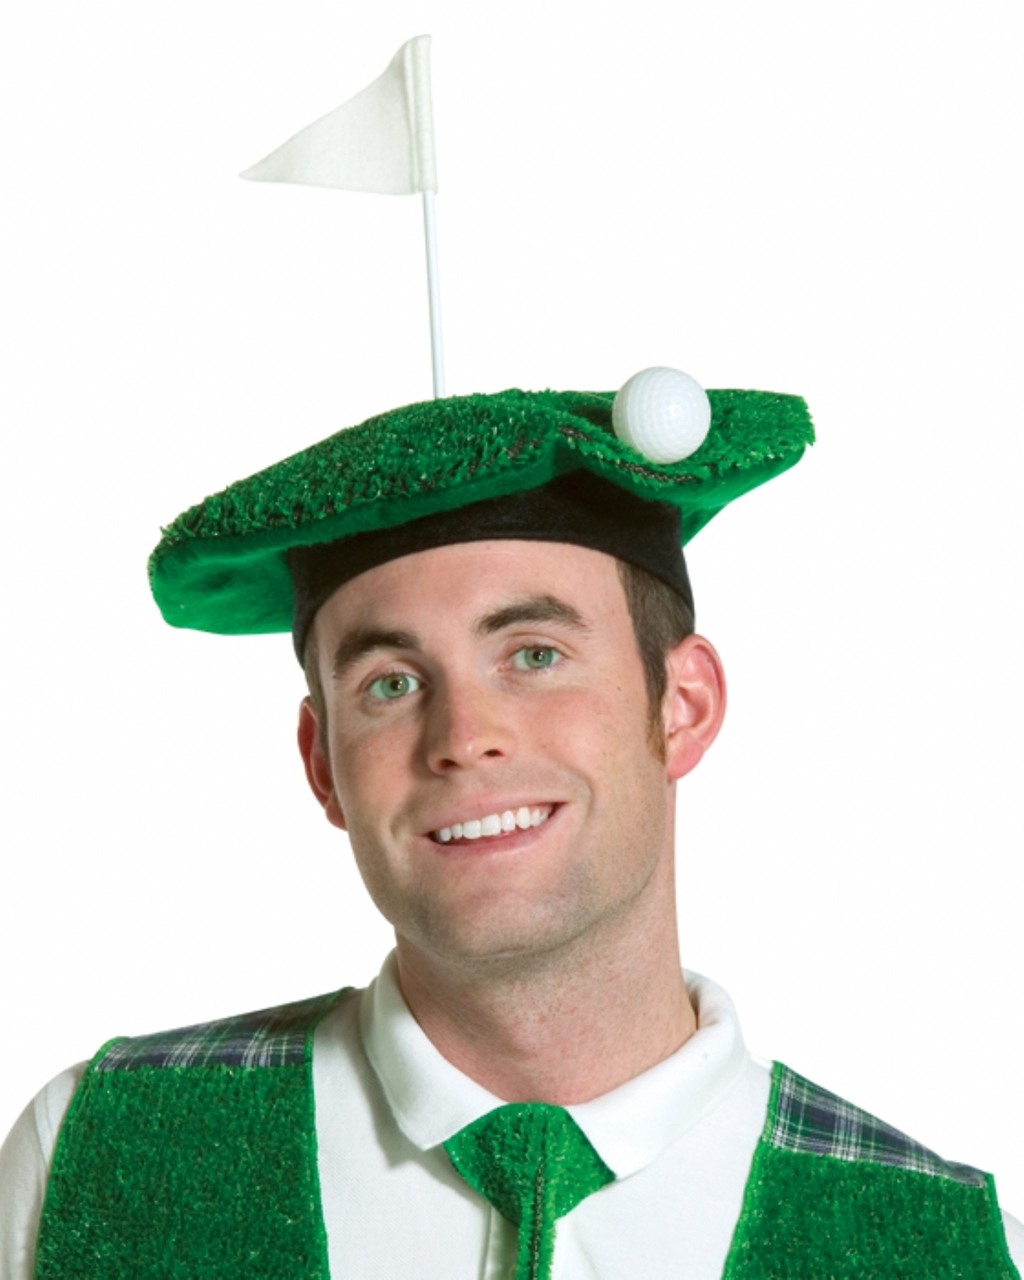 Hole in One Scottish Golfer Hat - The Costume Shoppe 7244bf1e7880